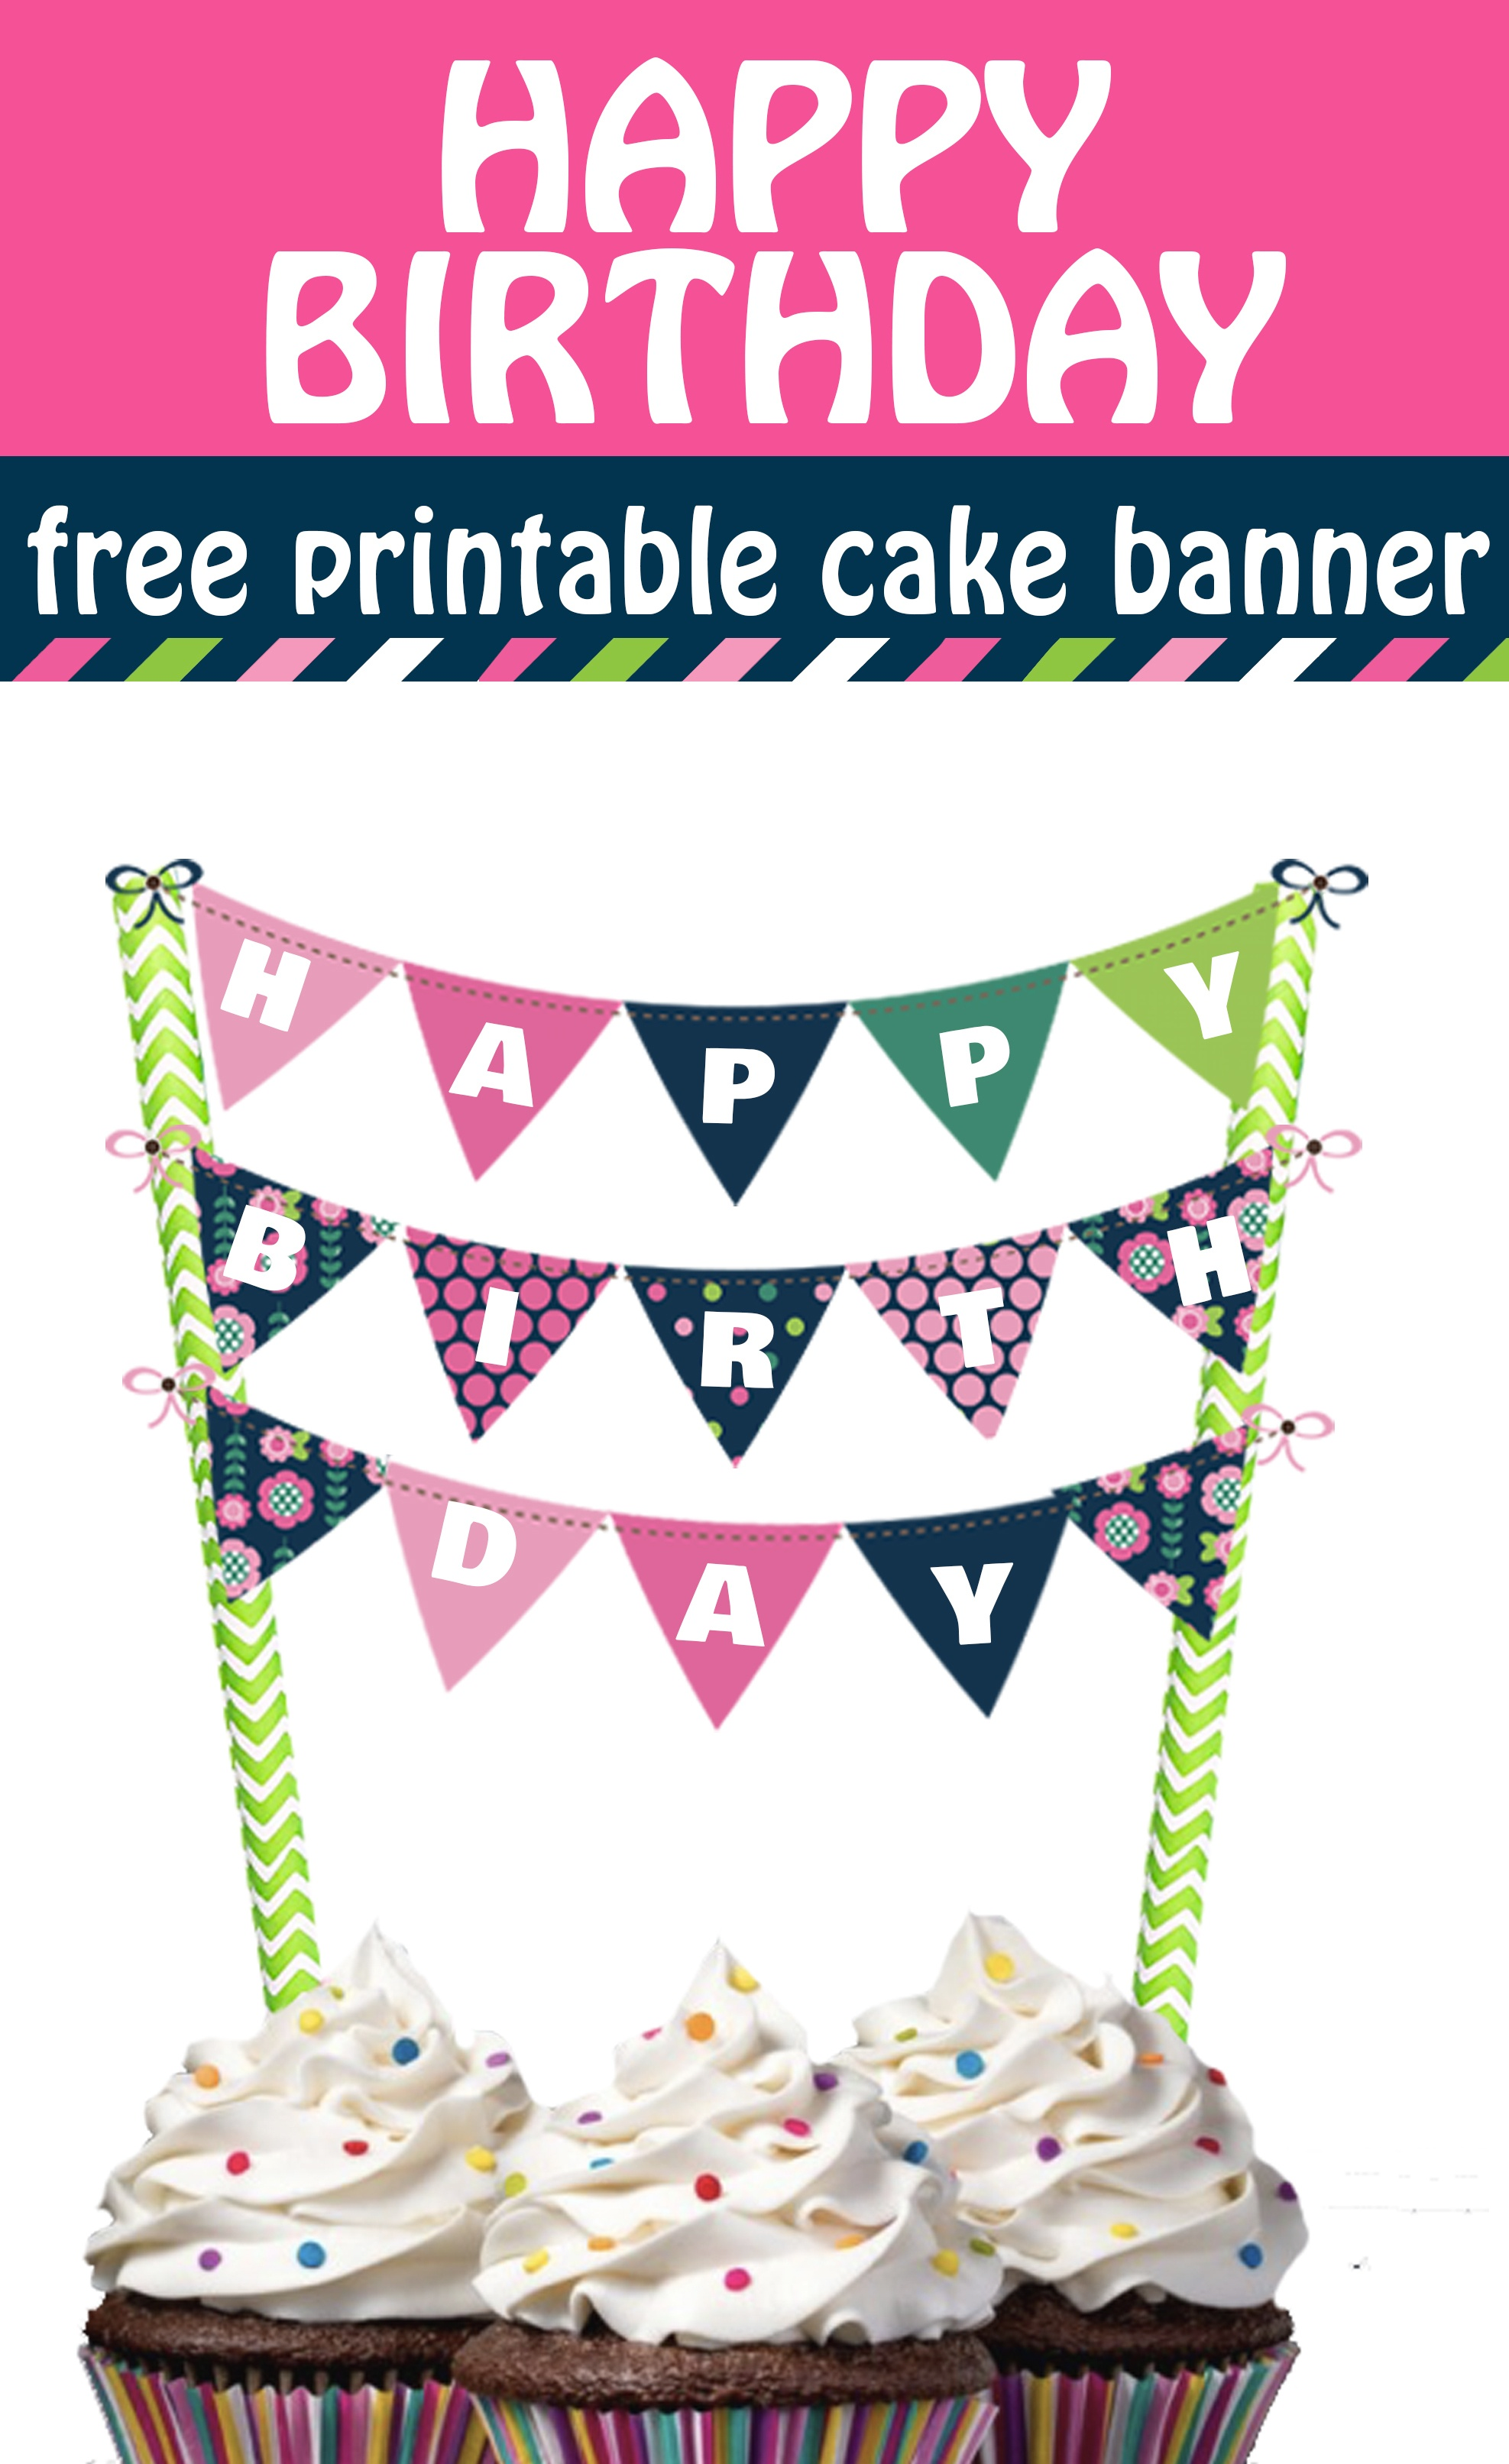 Cheerful And Bright Happy Birthday Cake Banner Free Printable - Free Printable Birthday Cake